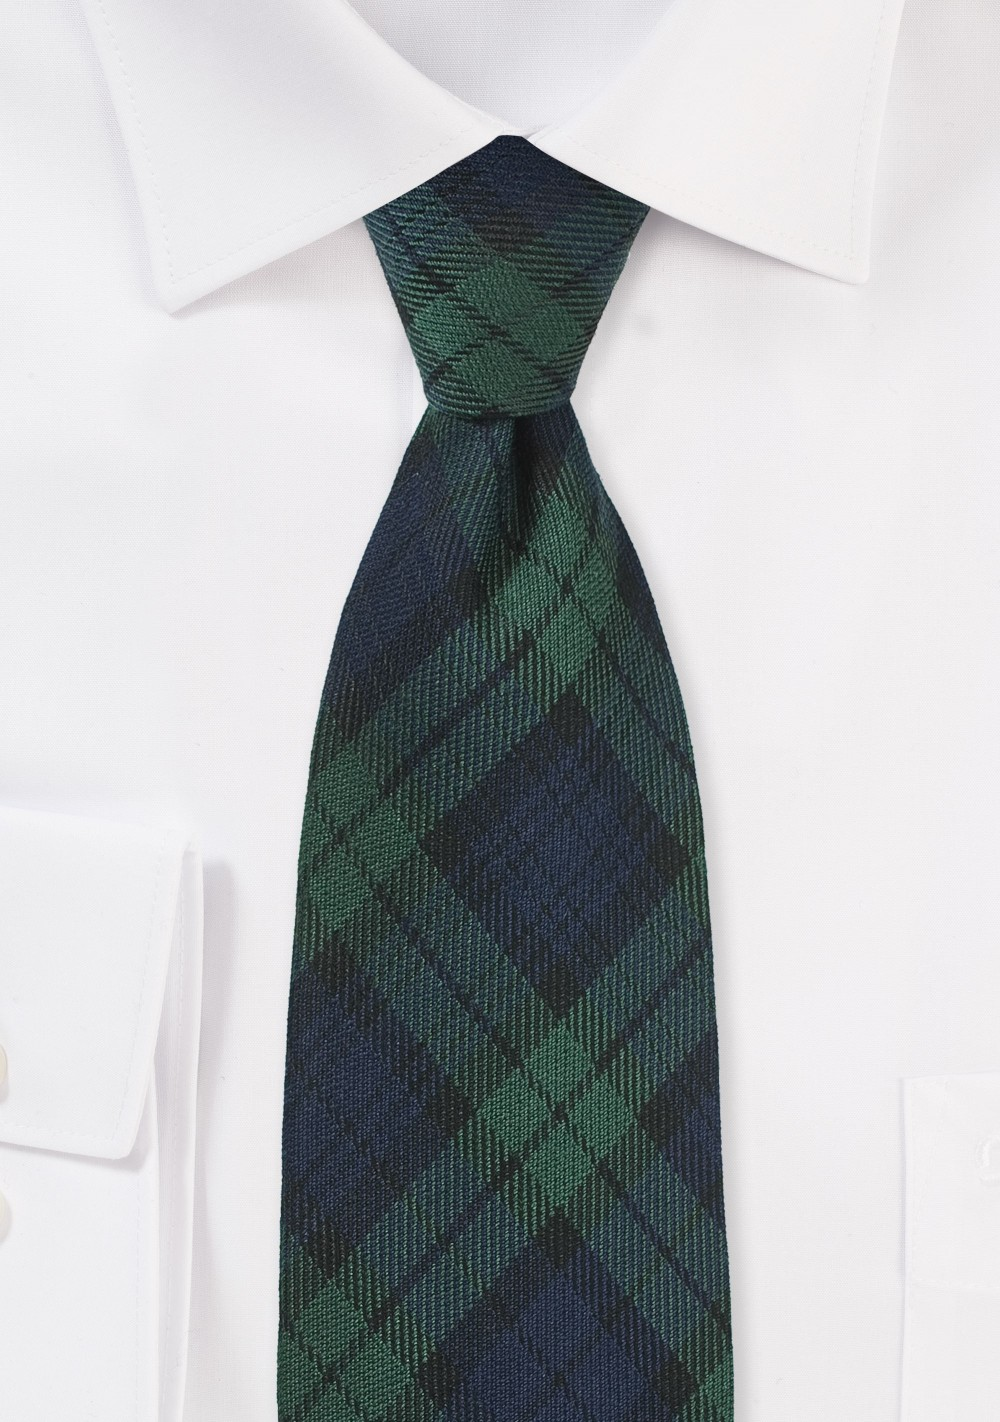 Wool Tartan Plaid Tie in Green and Navy